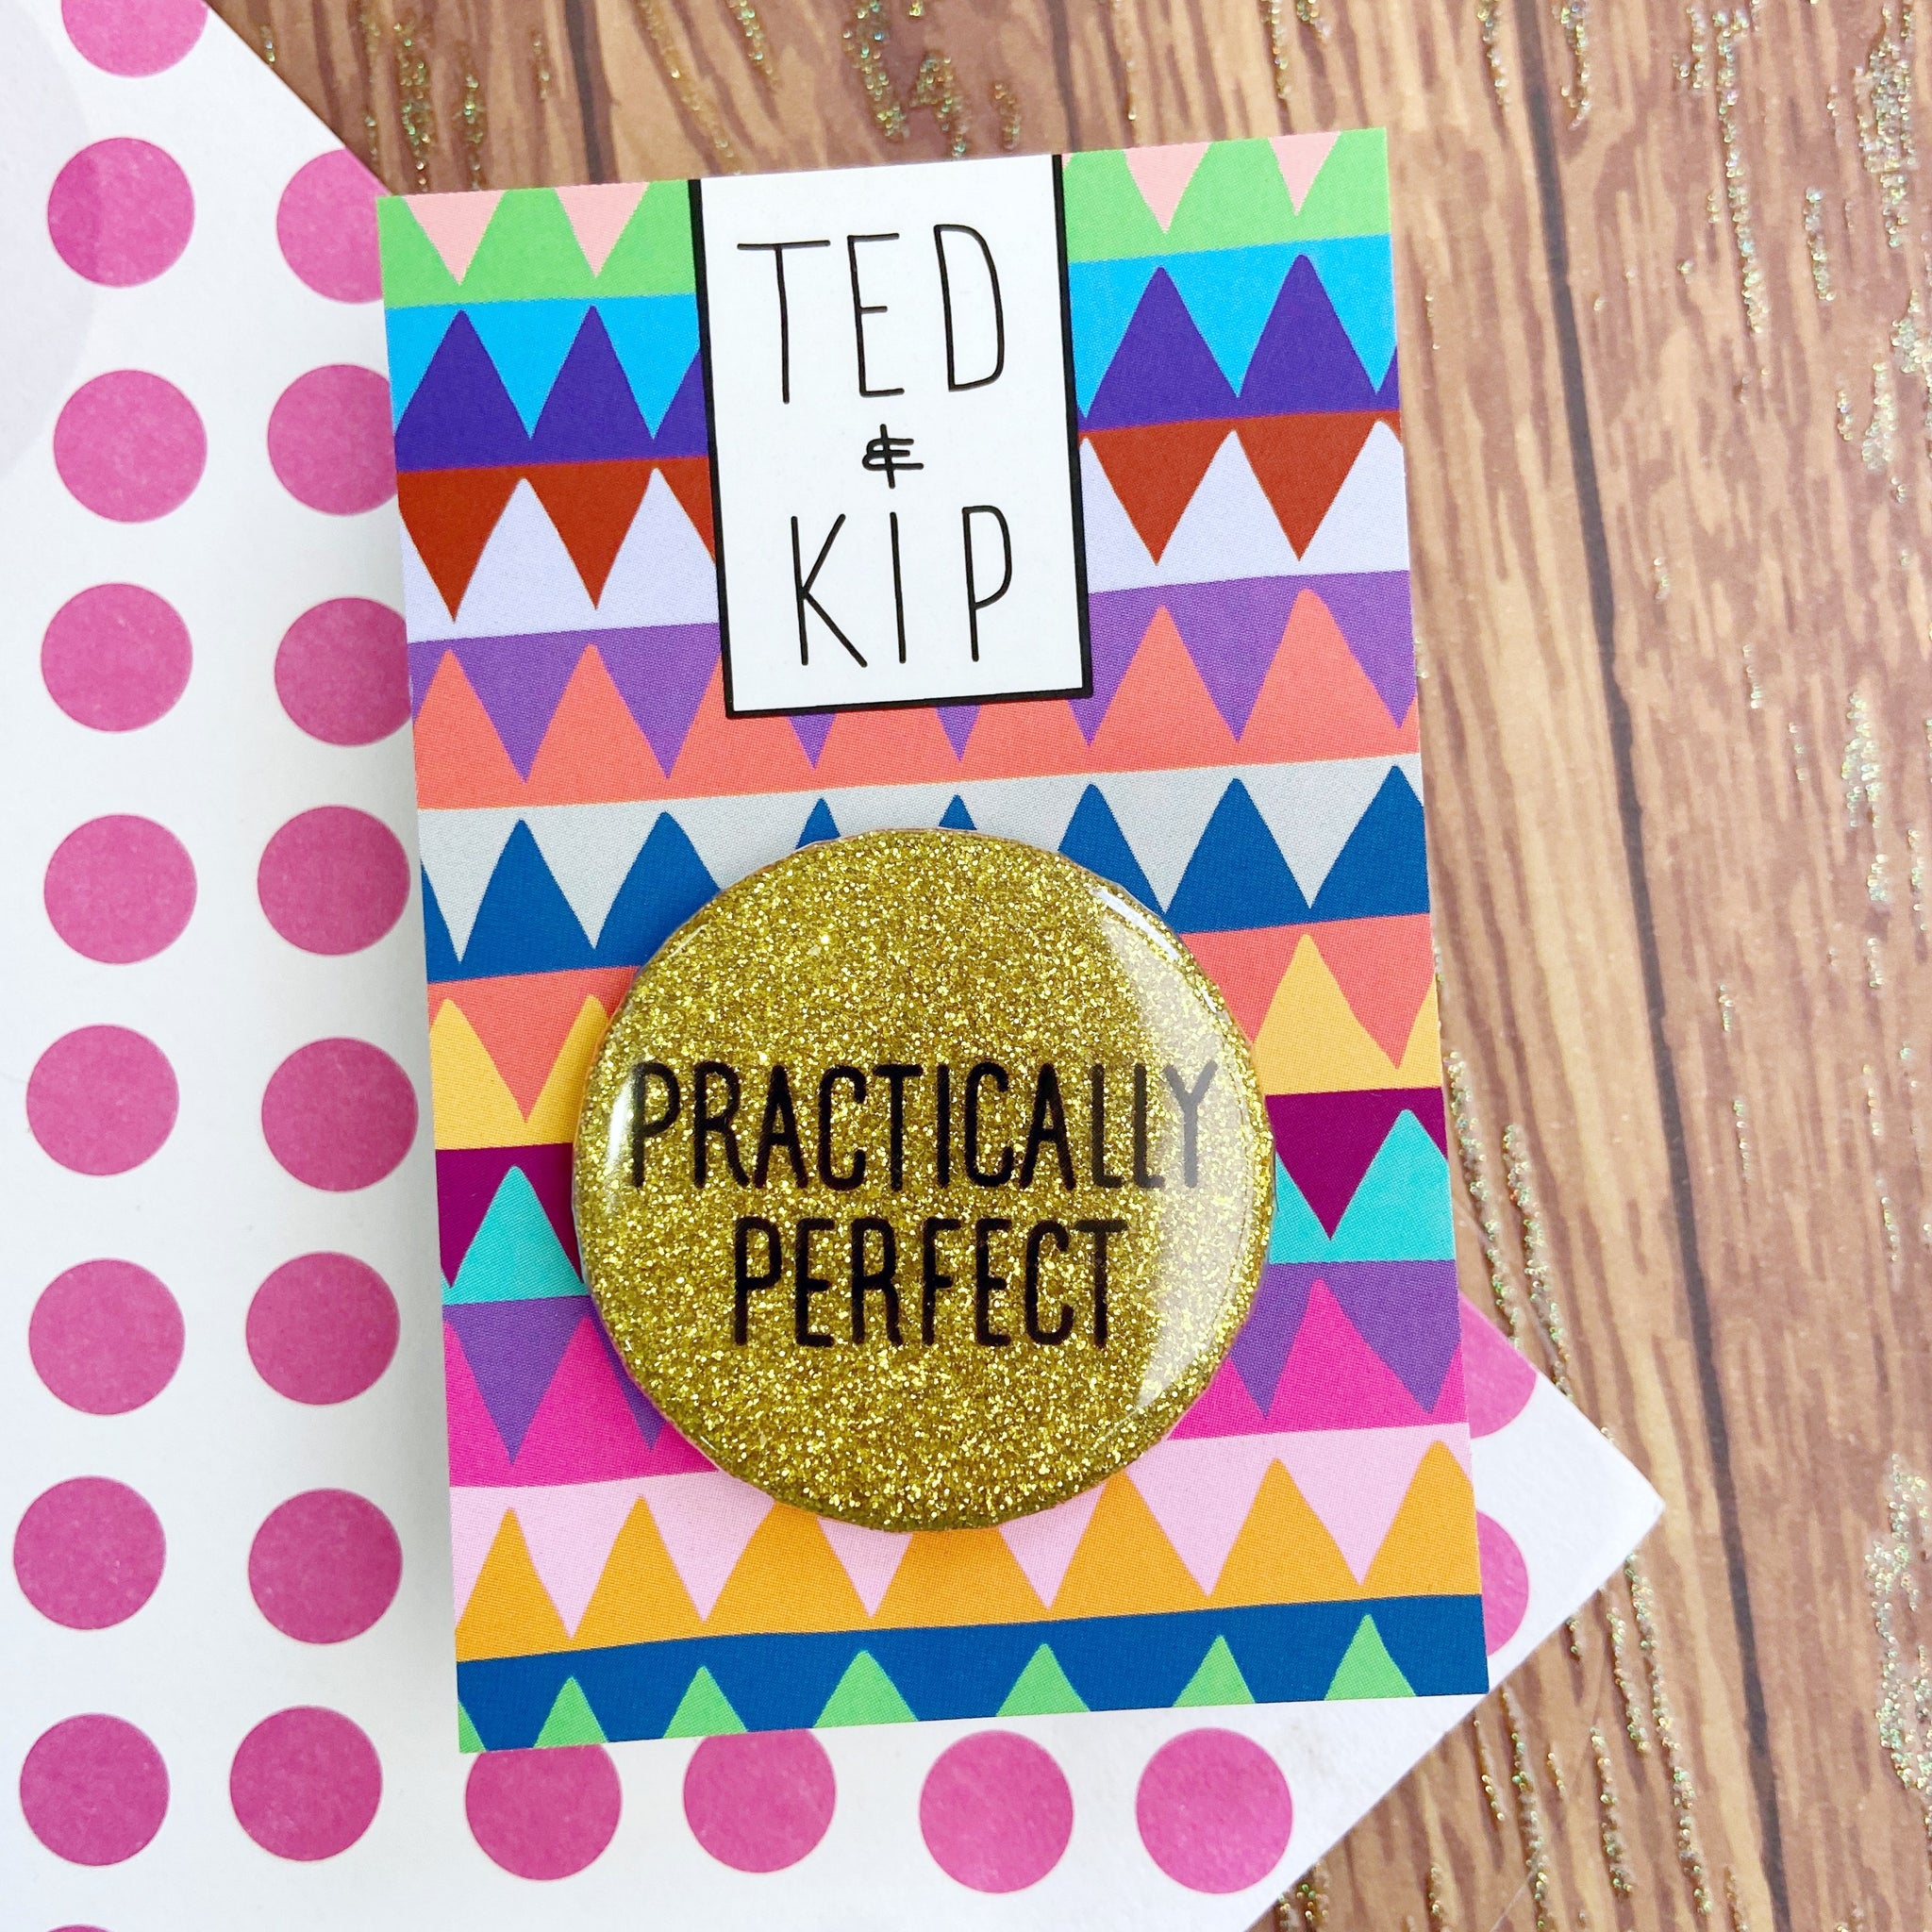 Practically Perfect Gold Glitter Button Badge